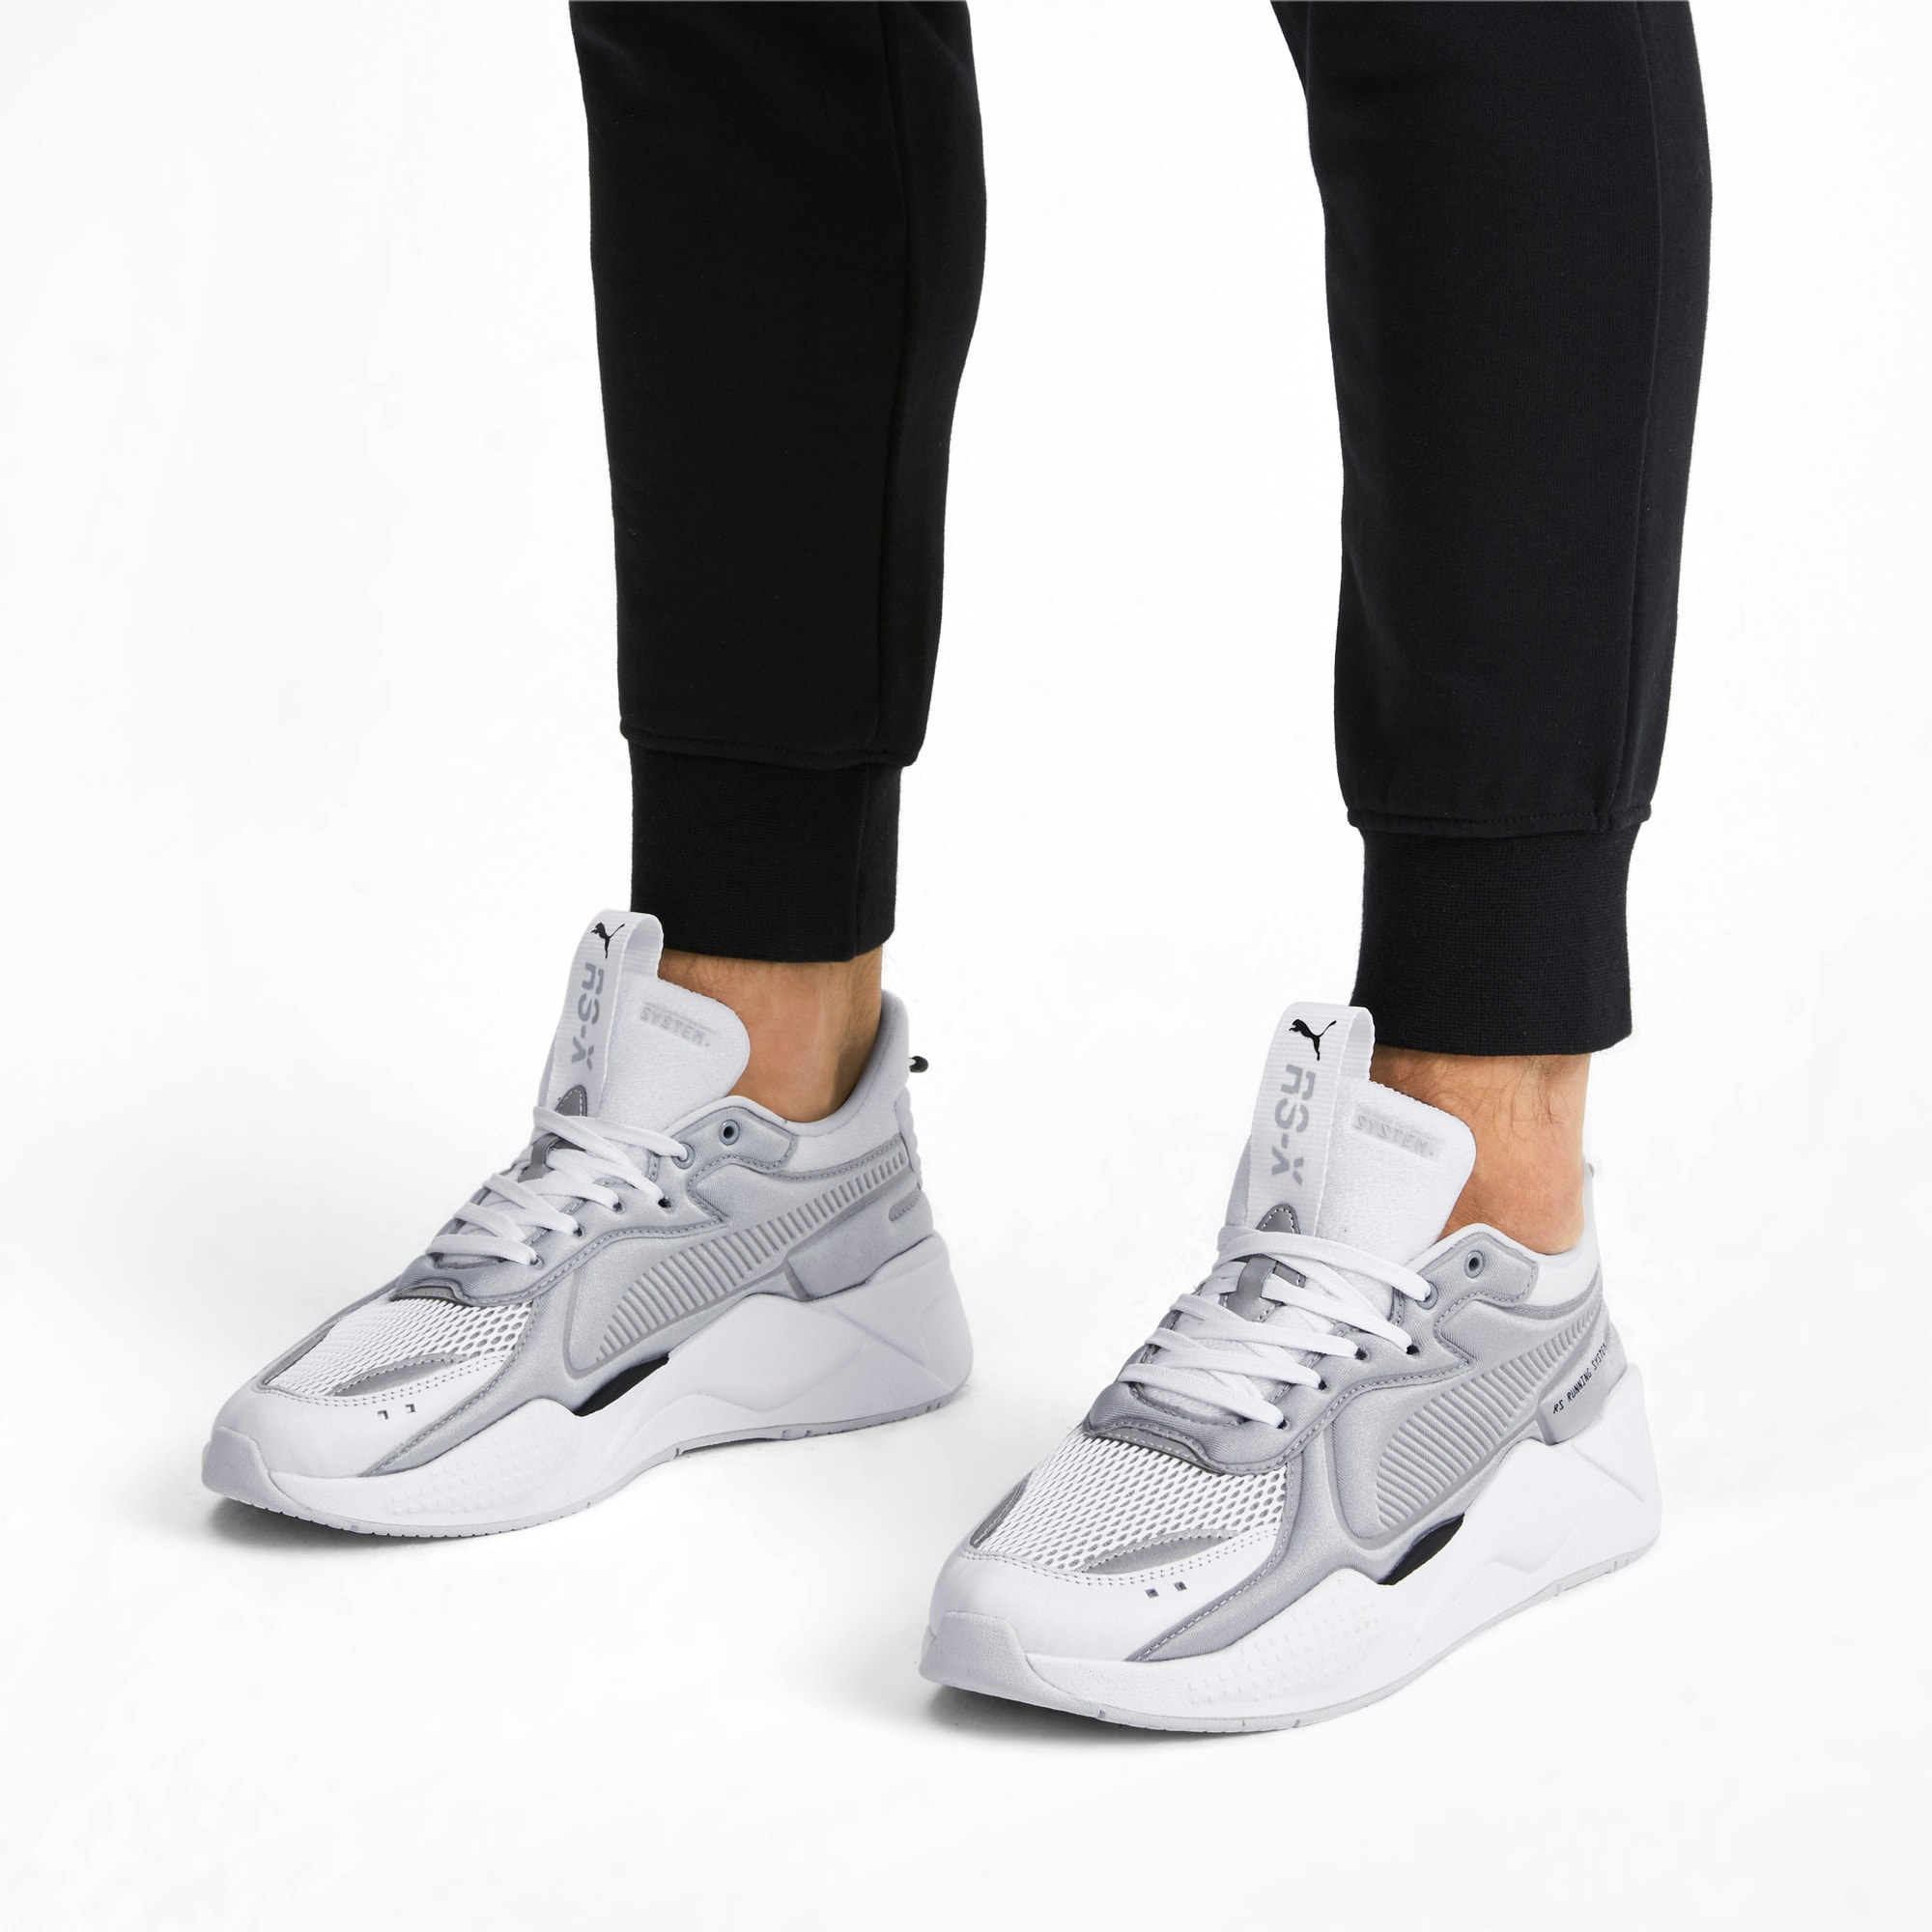 RS X Softcase Men's Sneakers